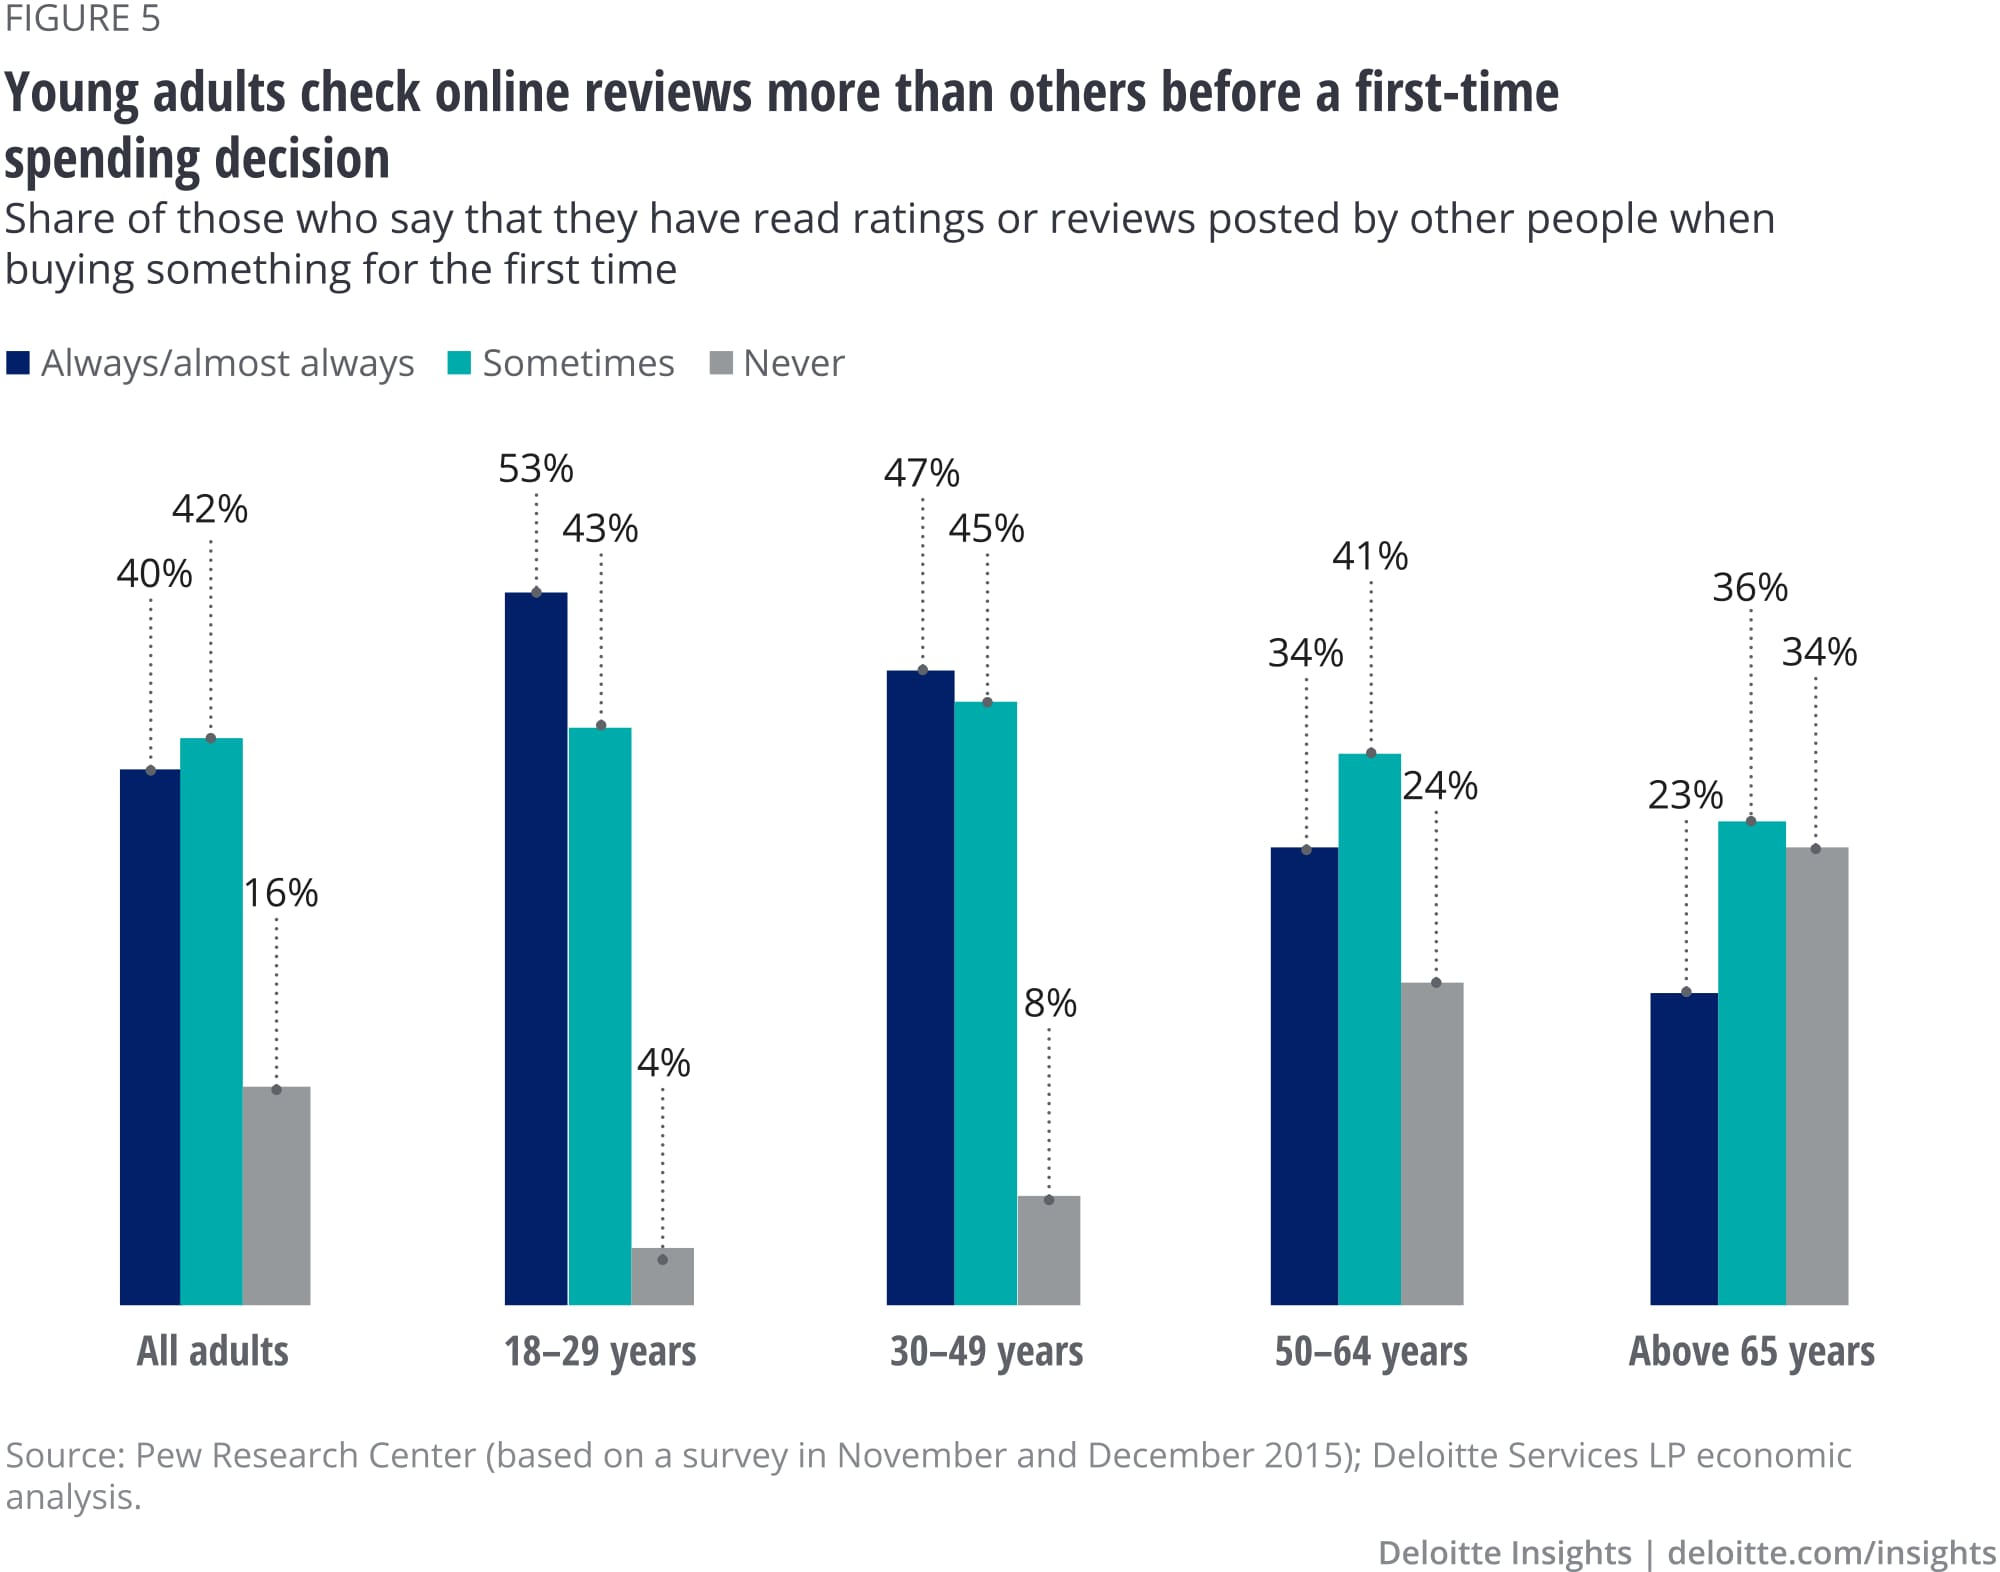 Young adults check online reviews more than others before a first-time spending decision